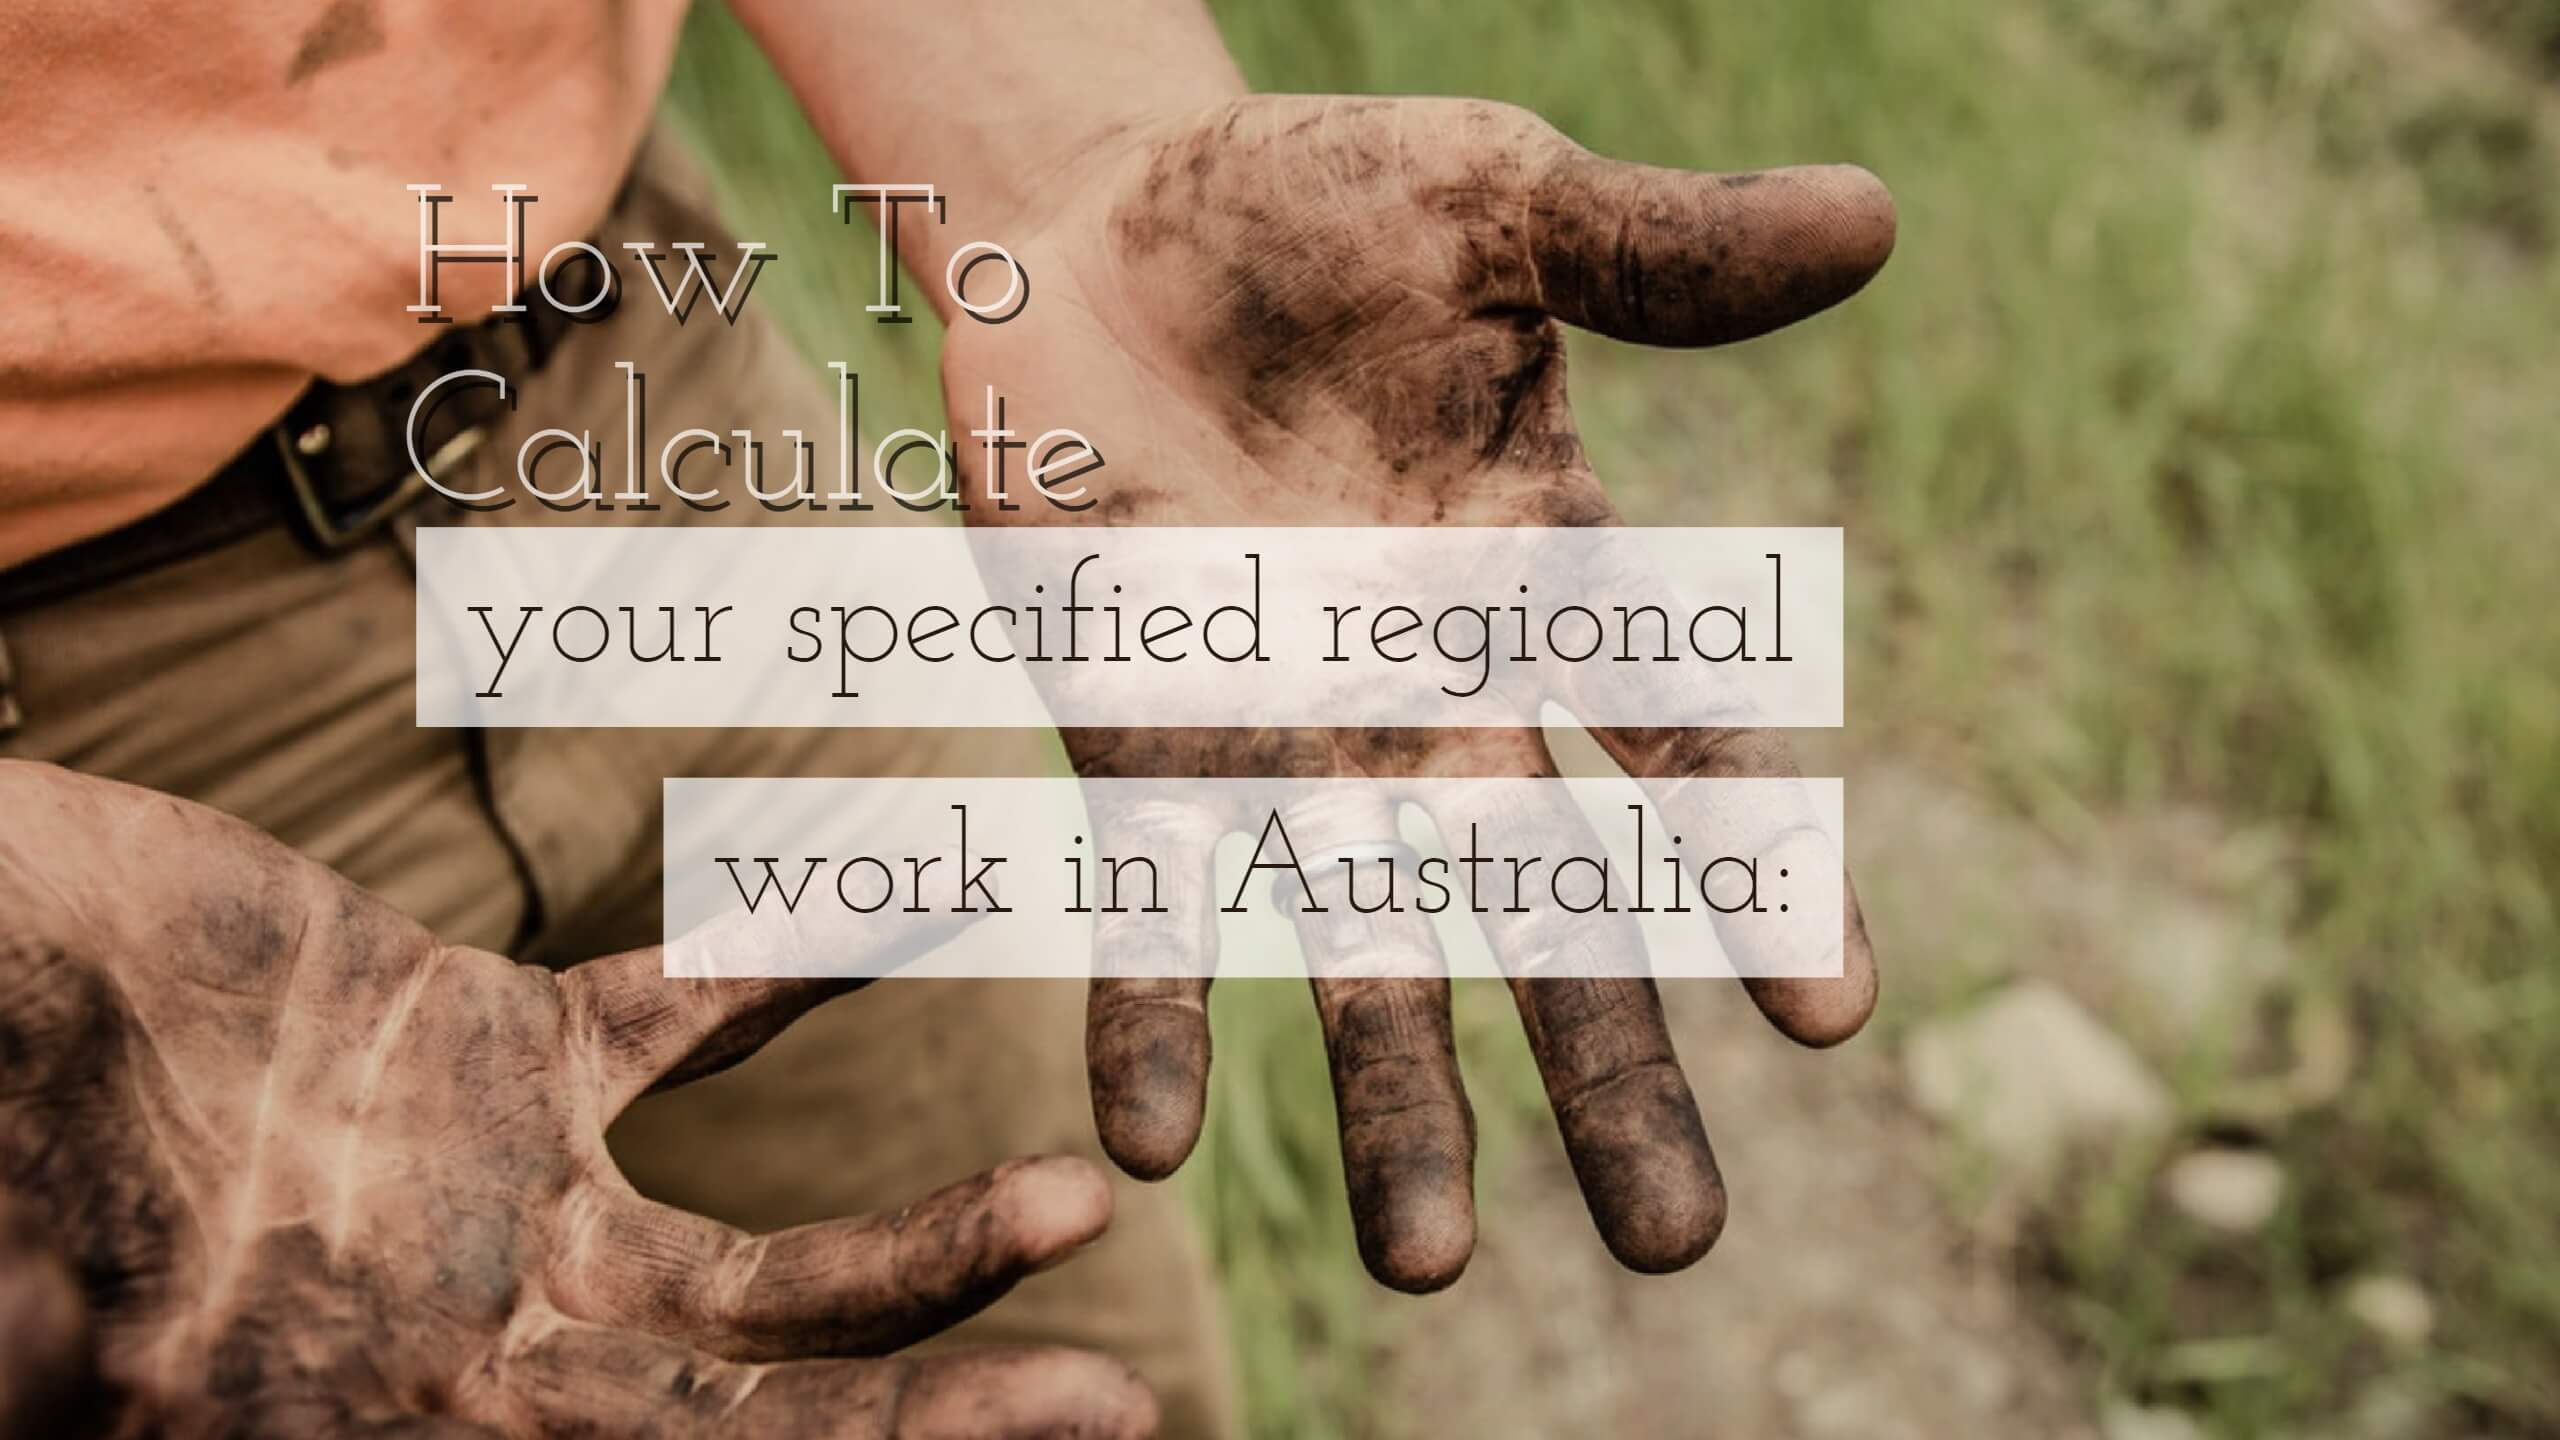 How do you calculate your regional work in Australia